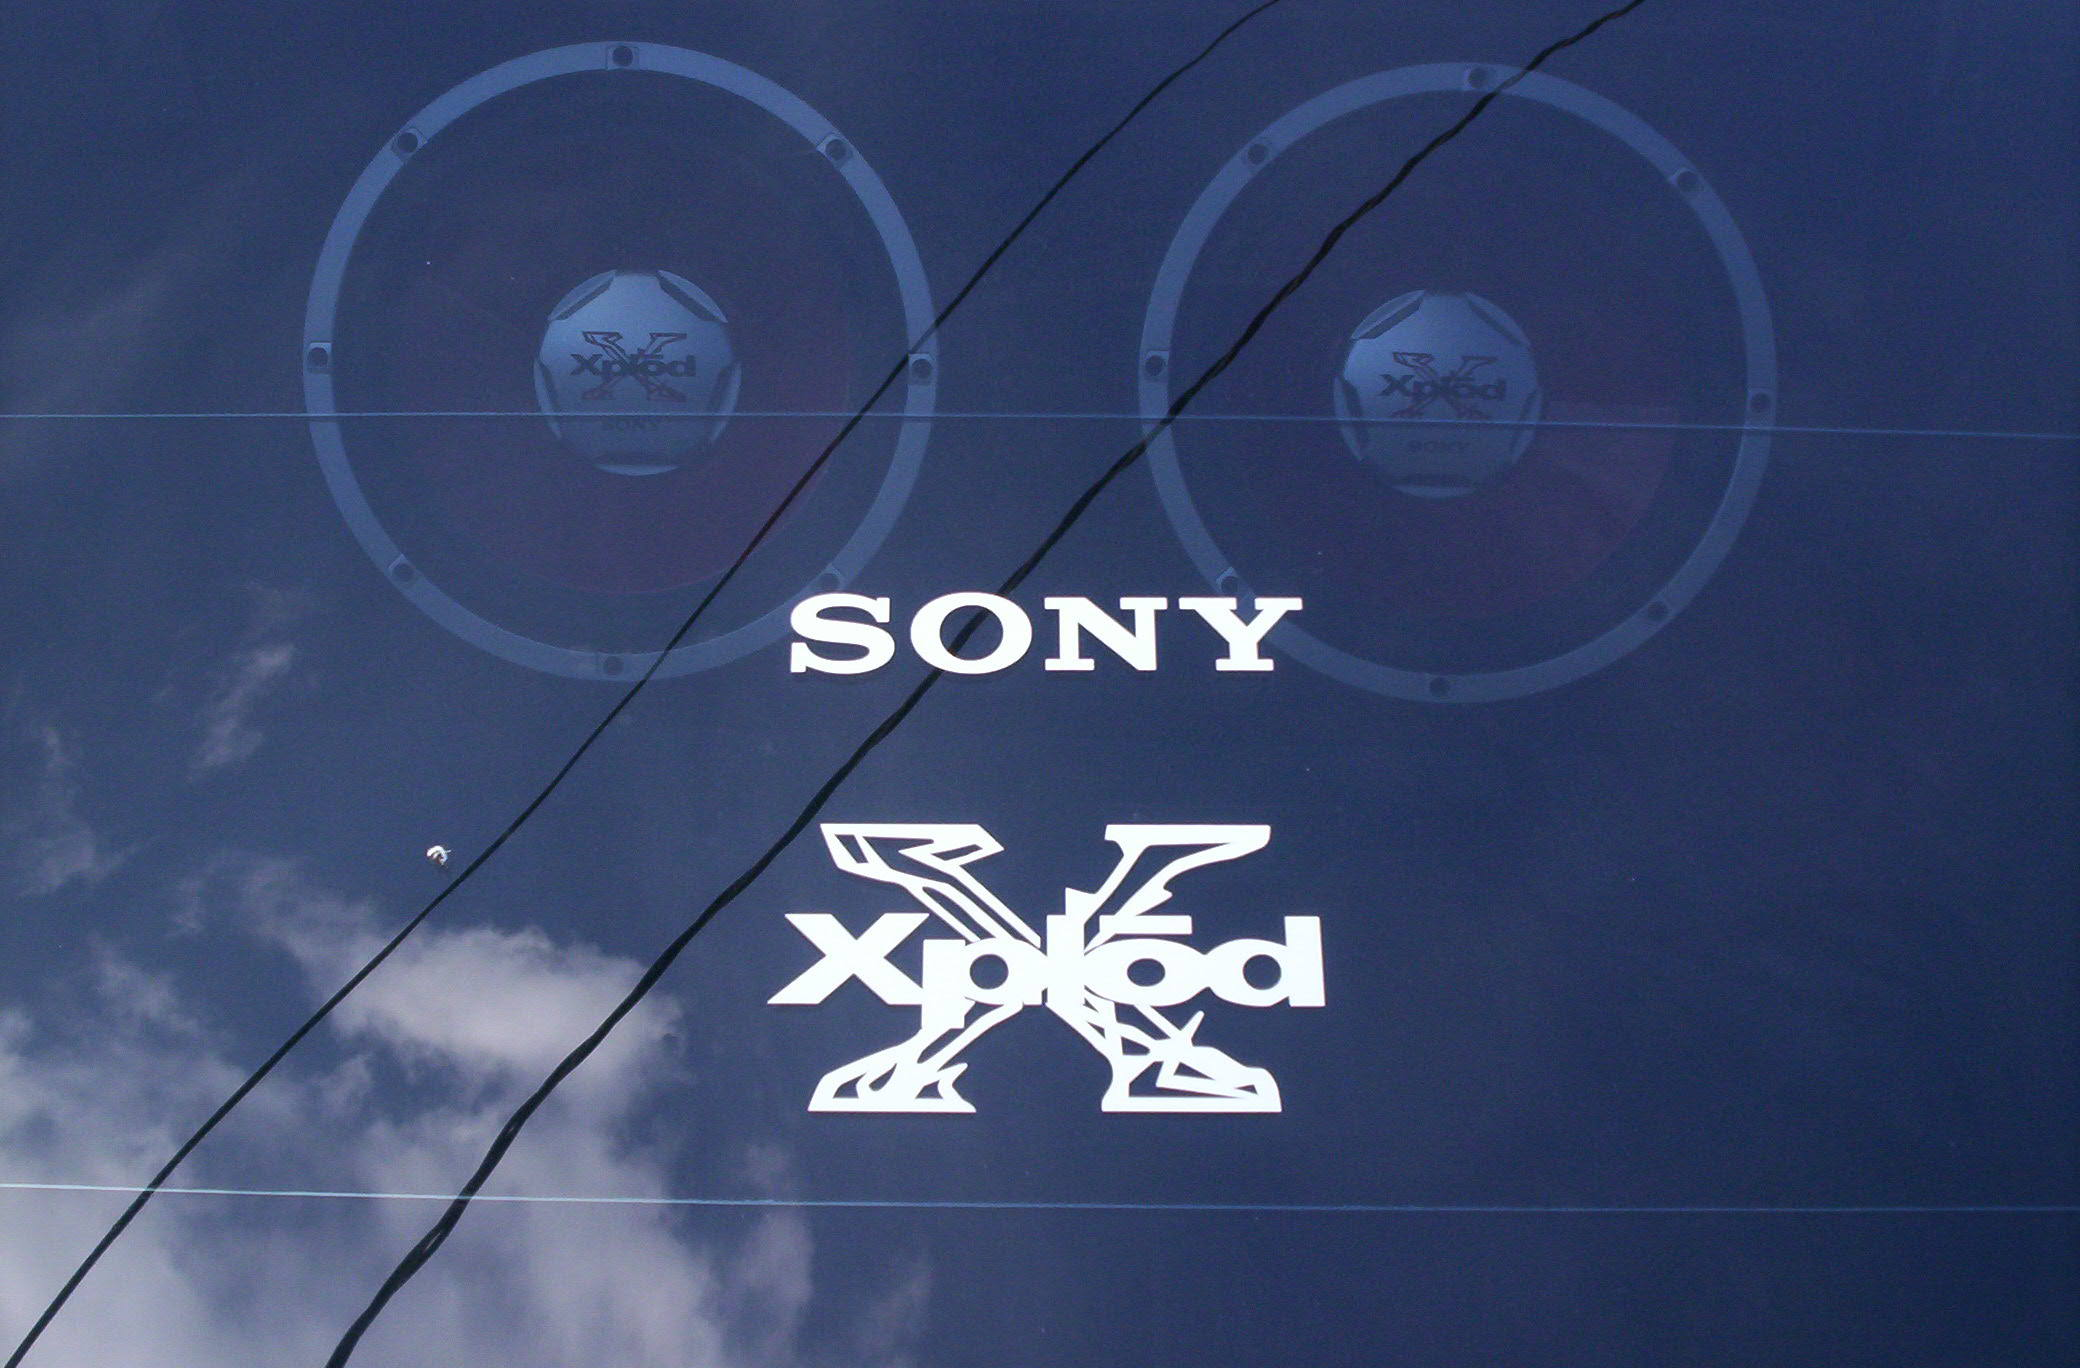 Sony xplod decal sticker